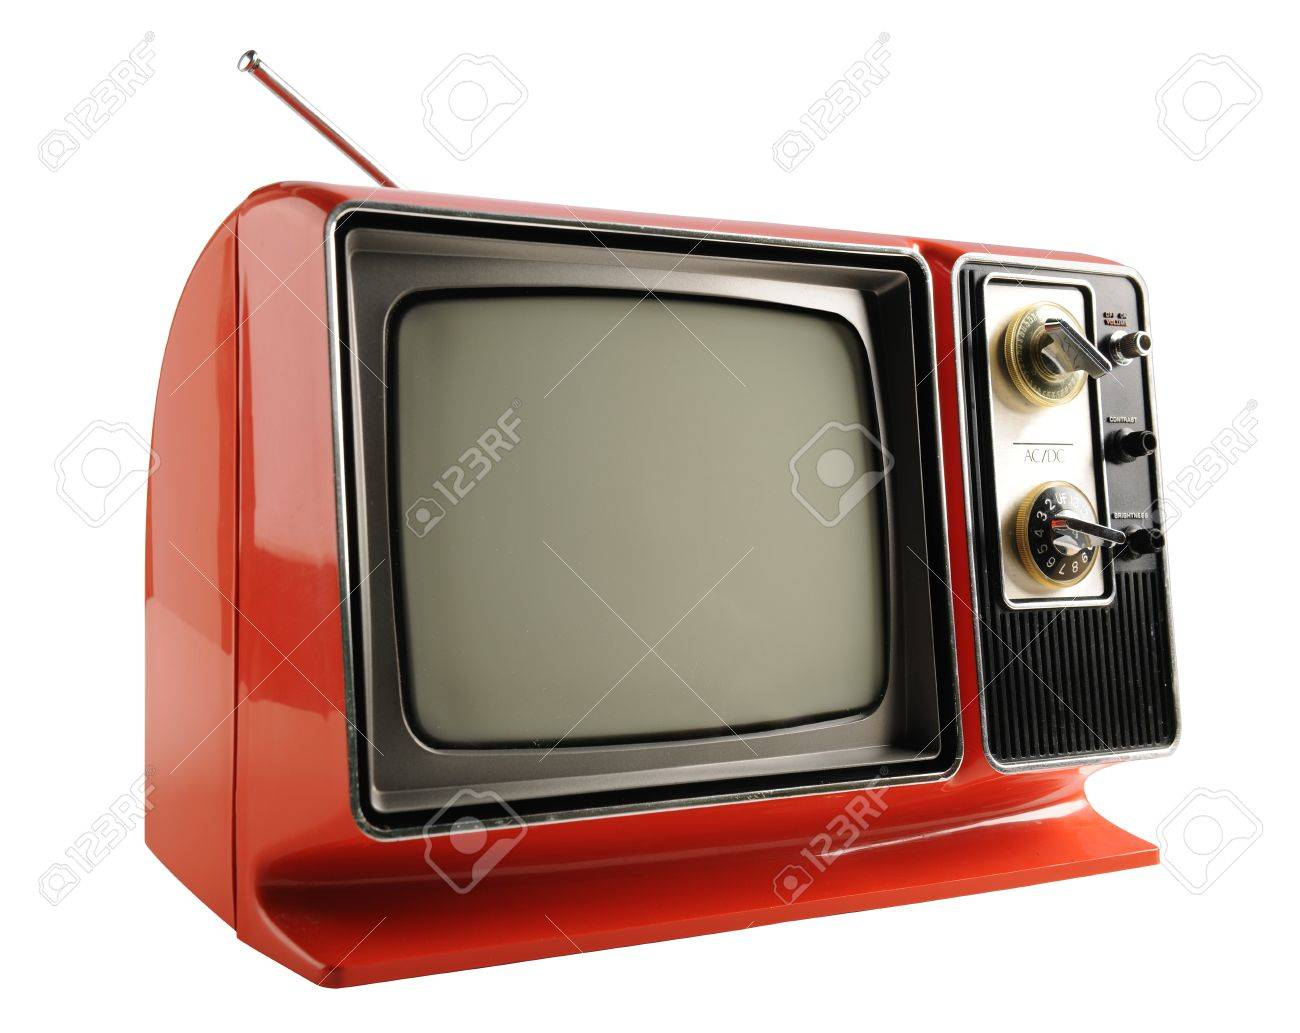 Orange vintage television from the 1970s